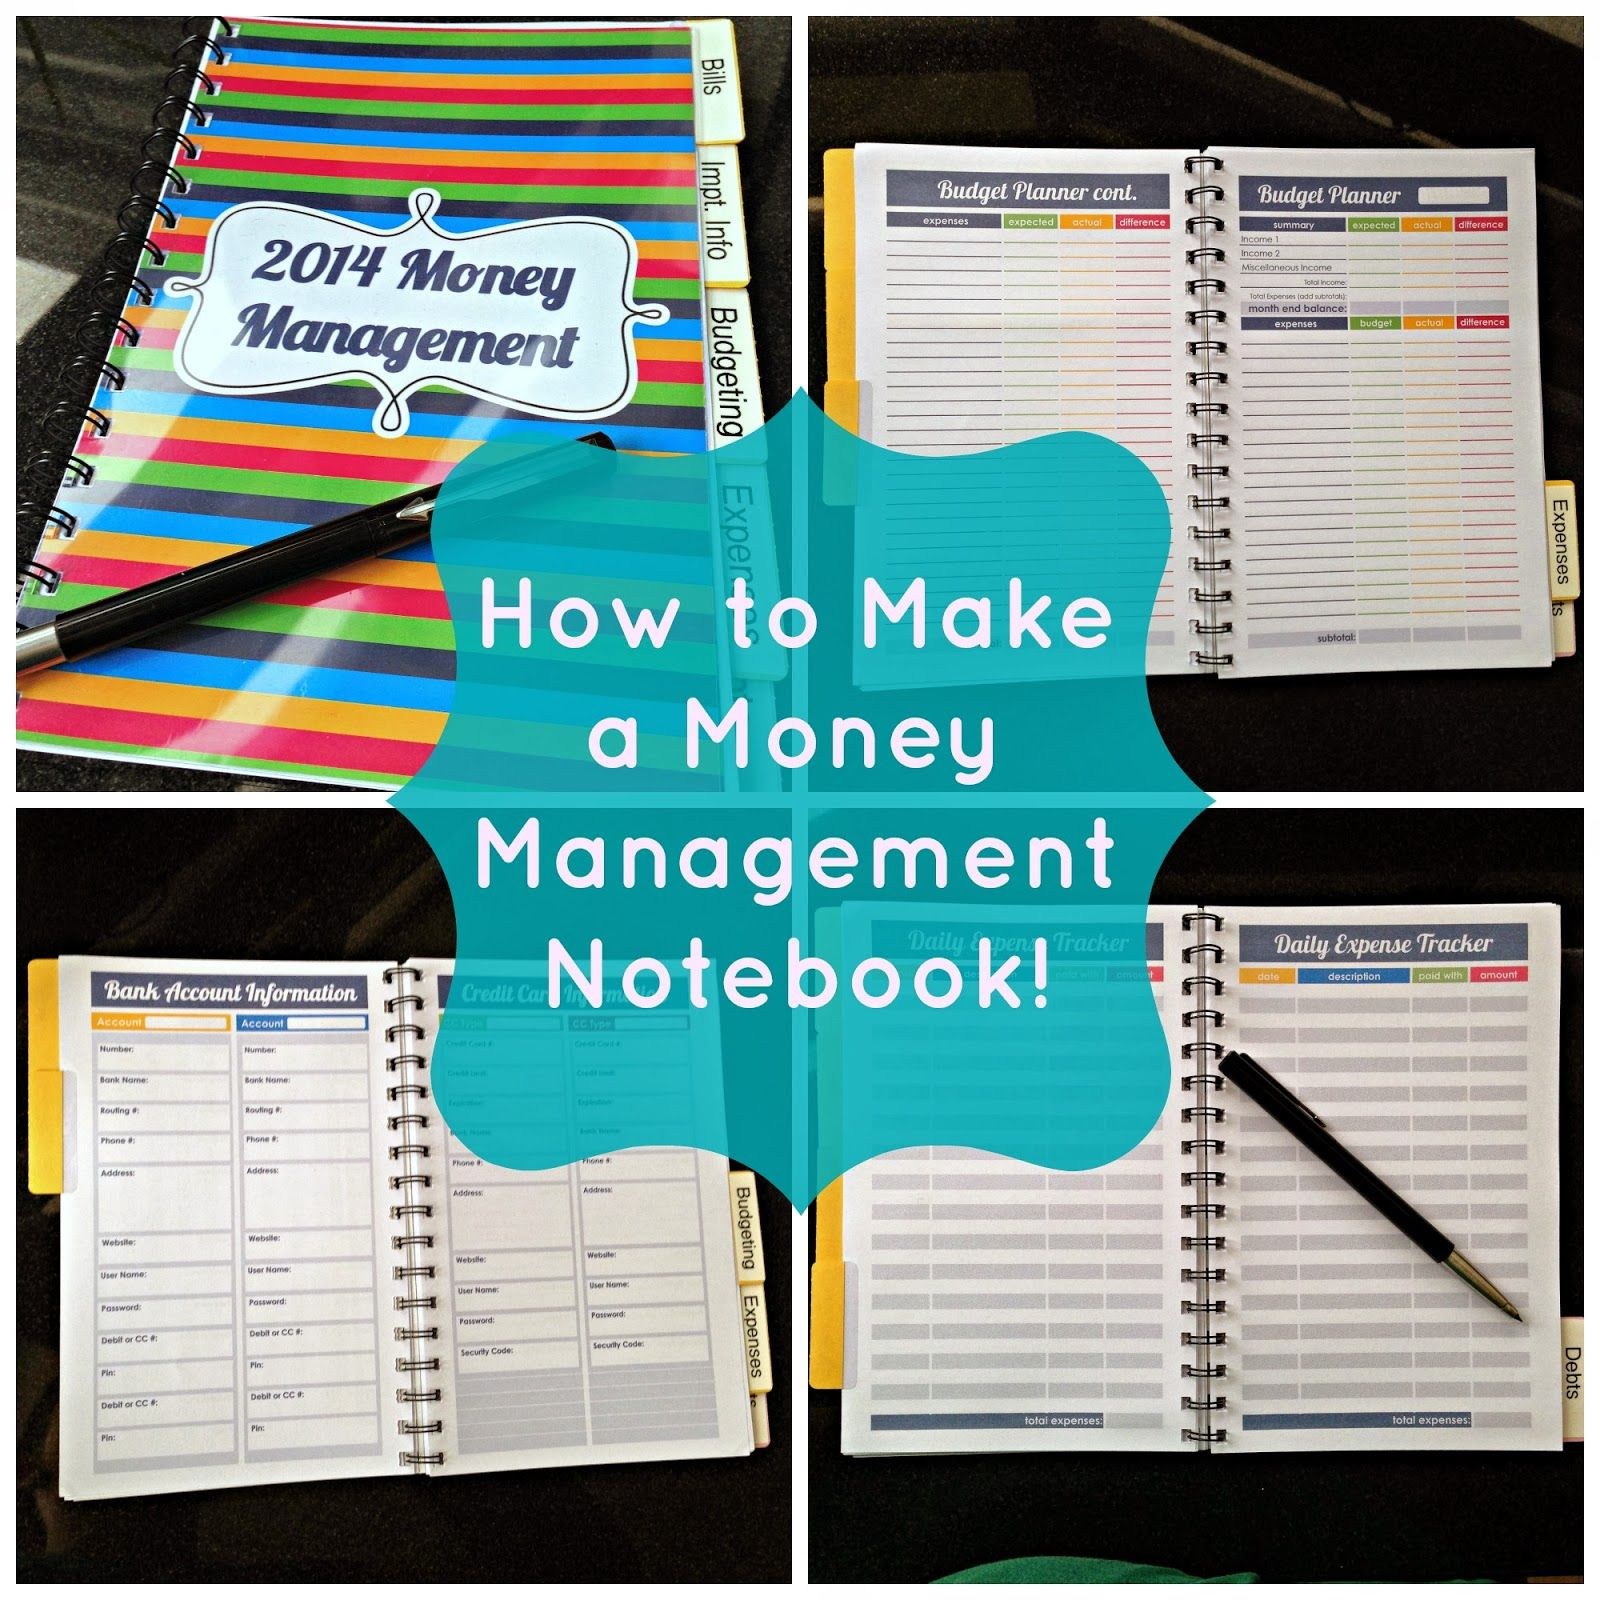 How to Make a Money Management Notebook (Fresh and